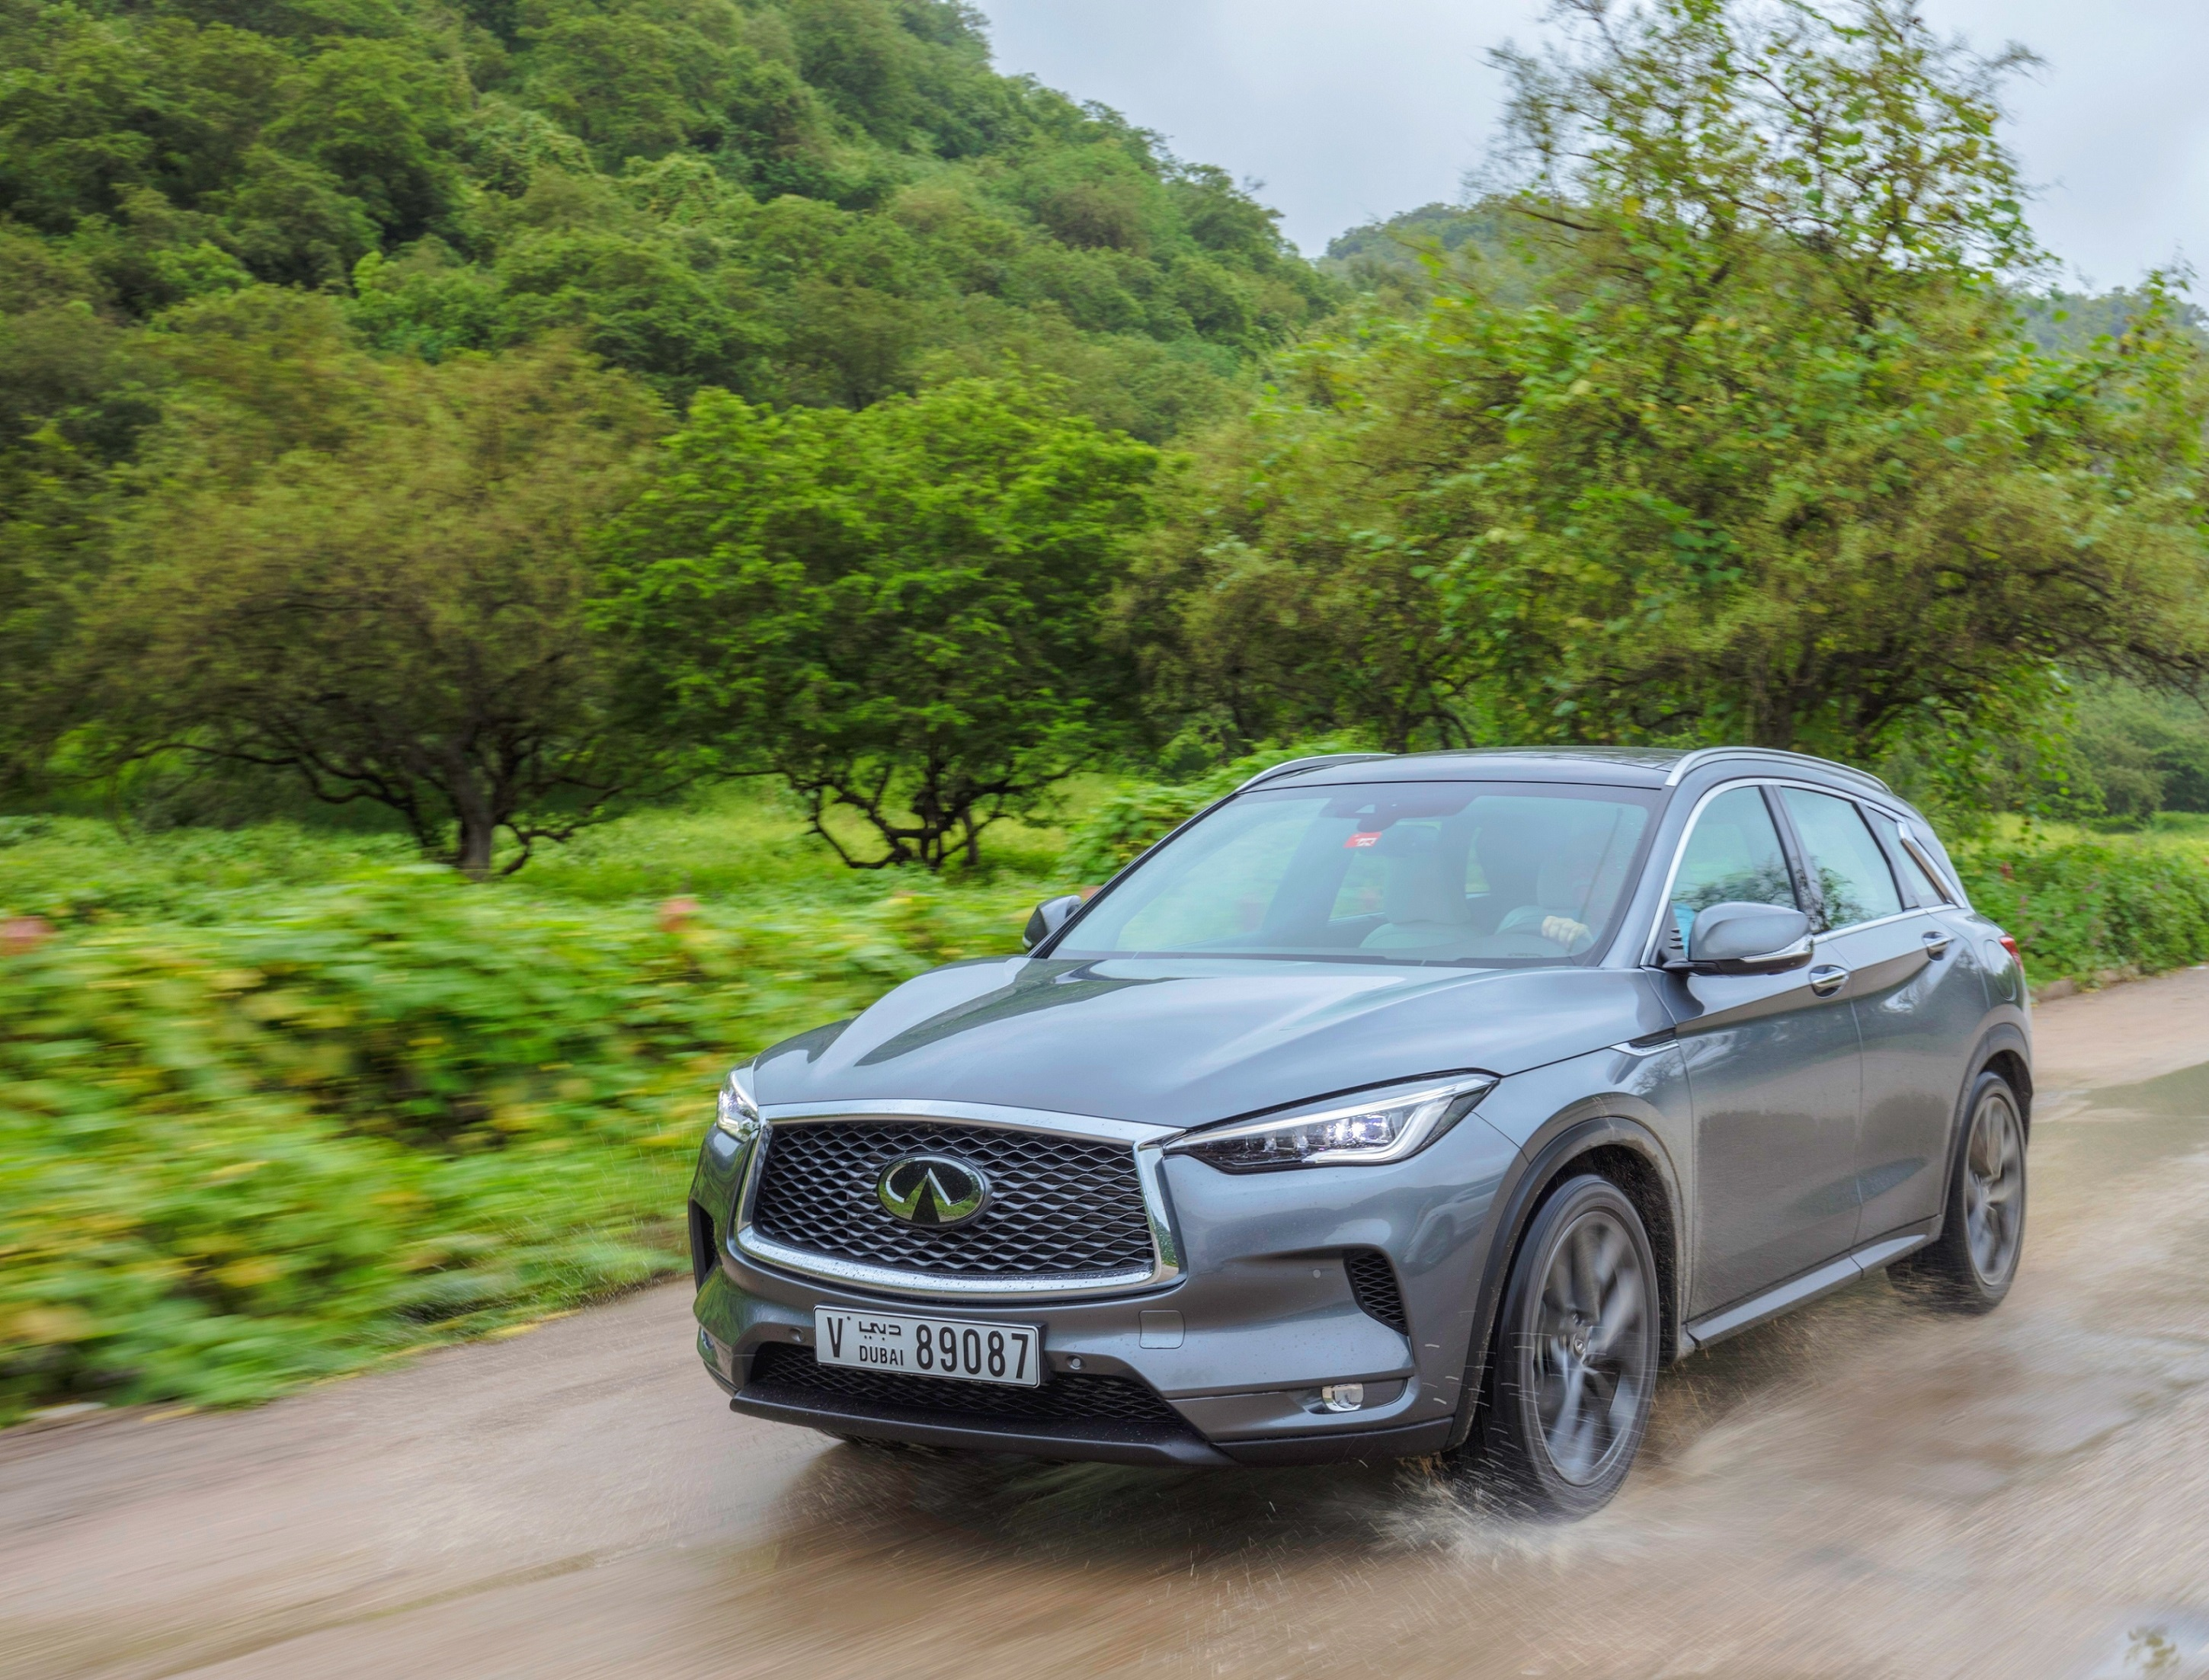 Infiniti Wins 2020 Consumer Guide Automotive Best Buy Award for 2020 QX50